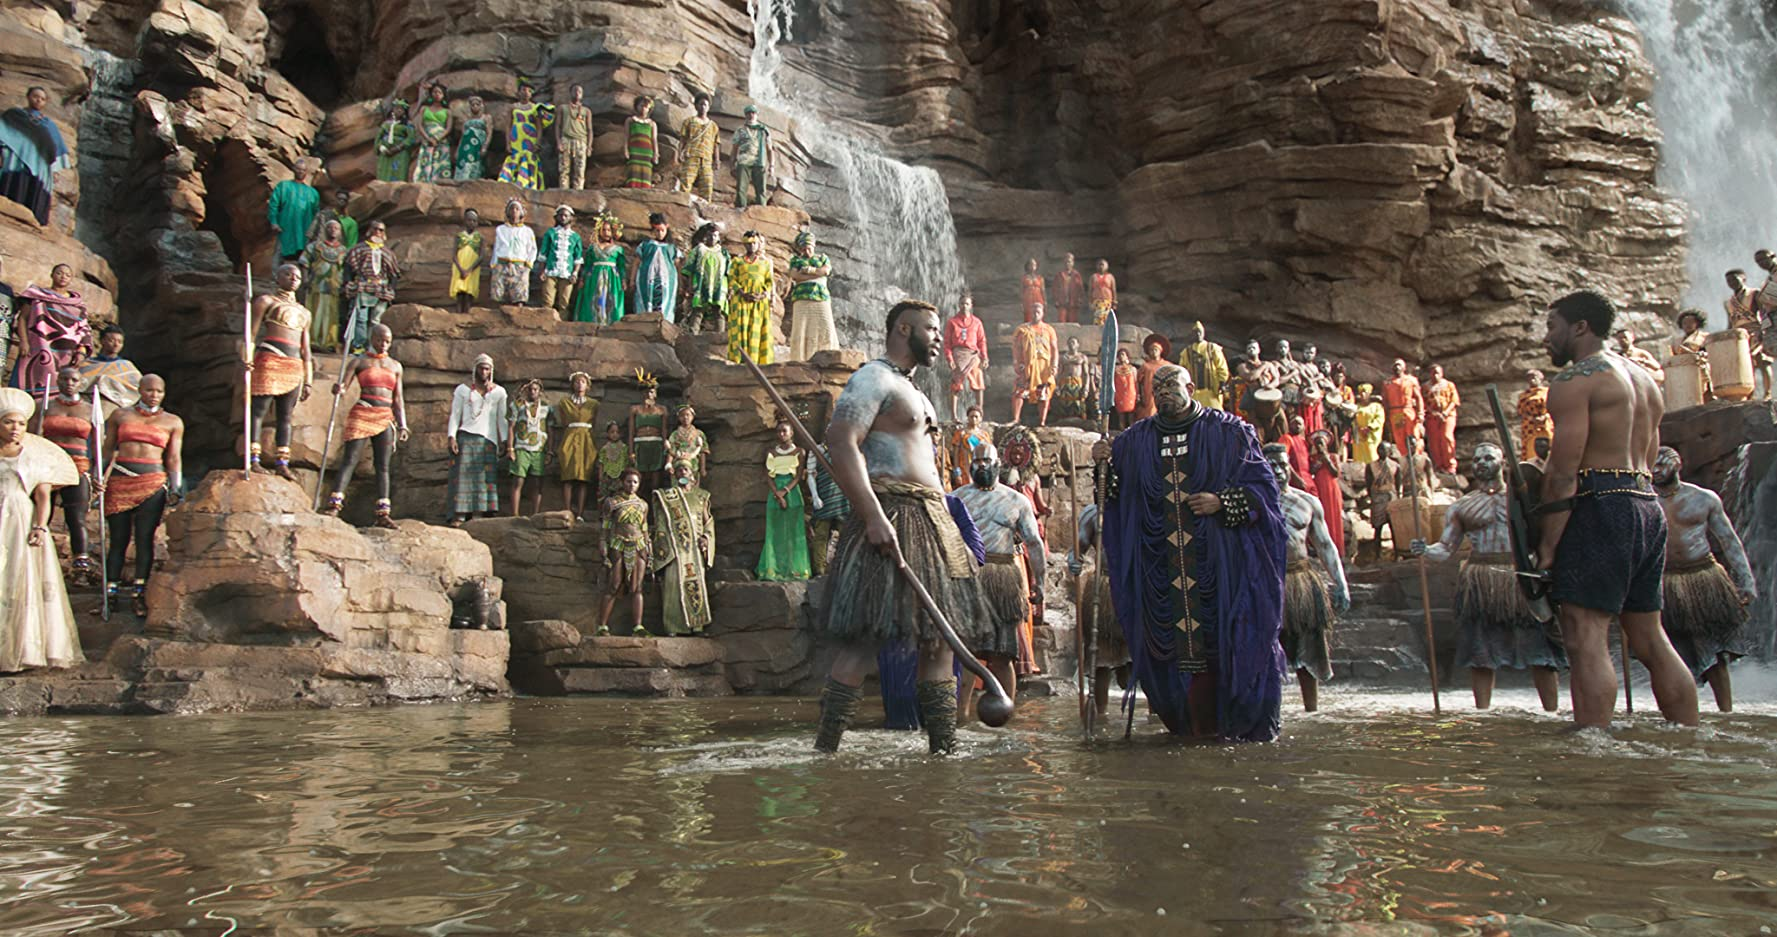 Angela Bassett, Forest Whitaker, Florence Kasumba, Chadwick Boseman, Danai Gurira, and Winston Duke in Black Panther (2018)